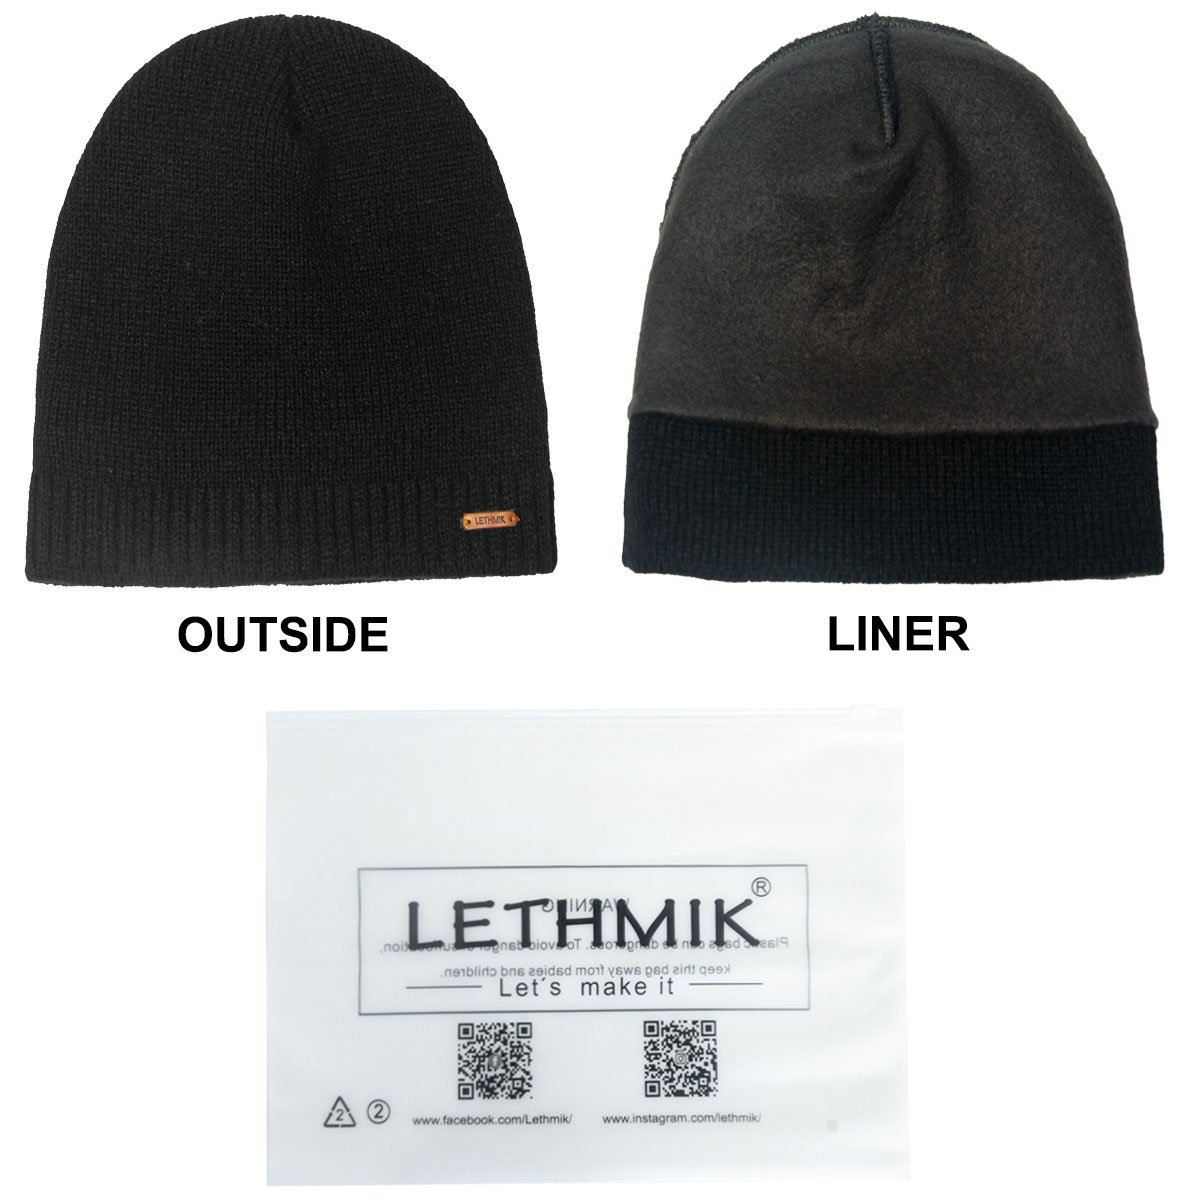 7a0bacd13e2 LETHMIK Fleece Lined Beanie Hat Mens Winter Solid Color Warm Knit Ski Skull  Cap Black  Amazon.in  Clothing   Accessories